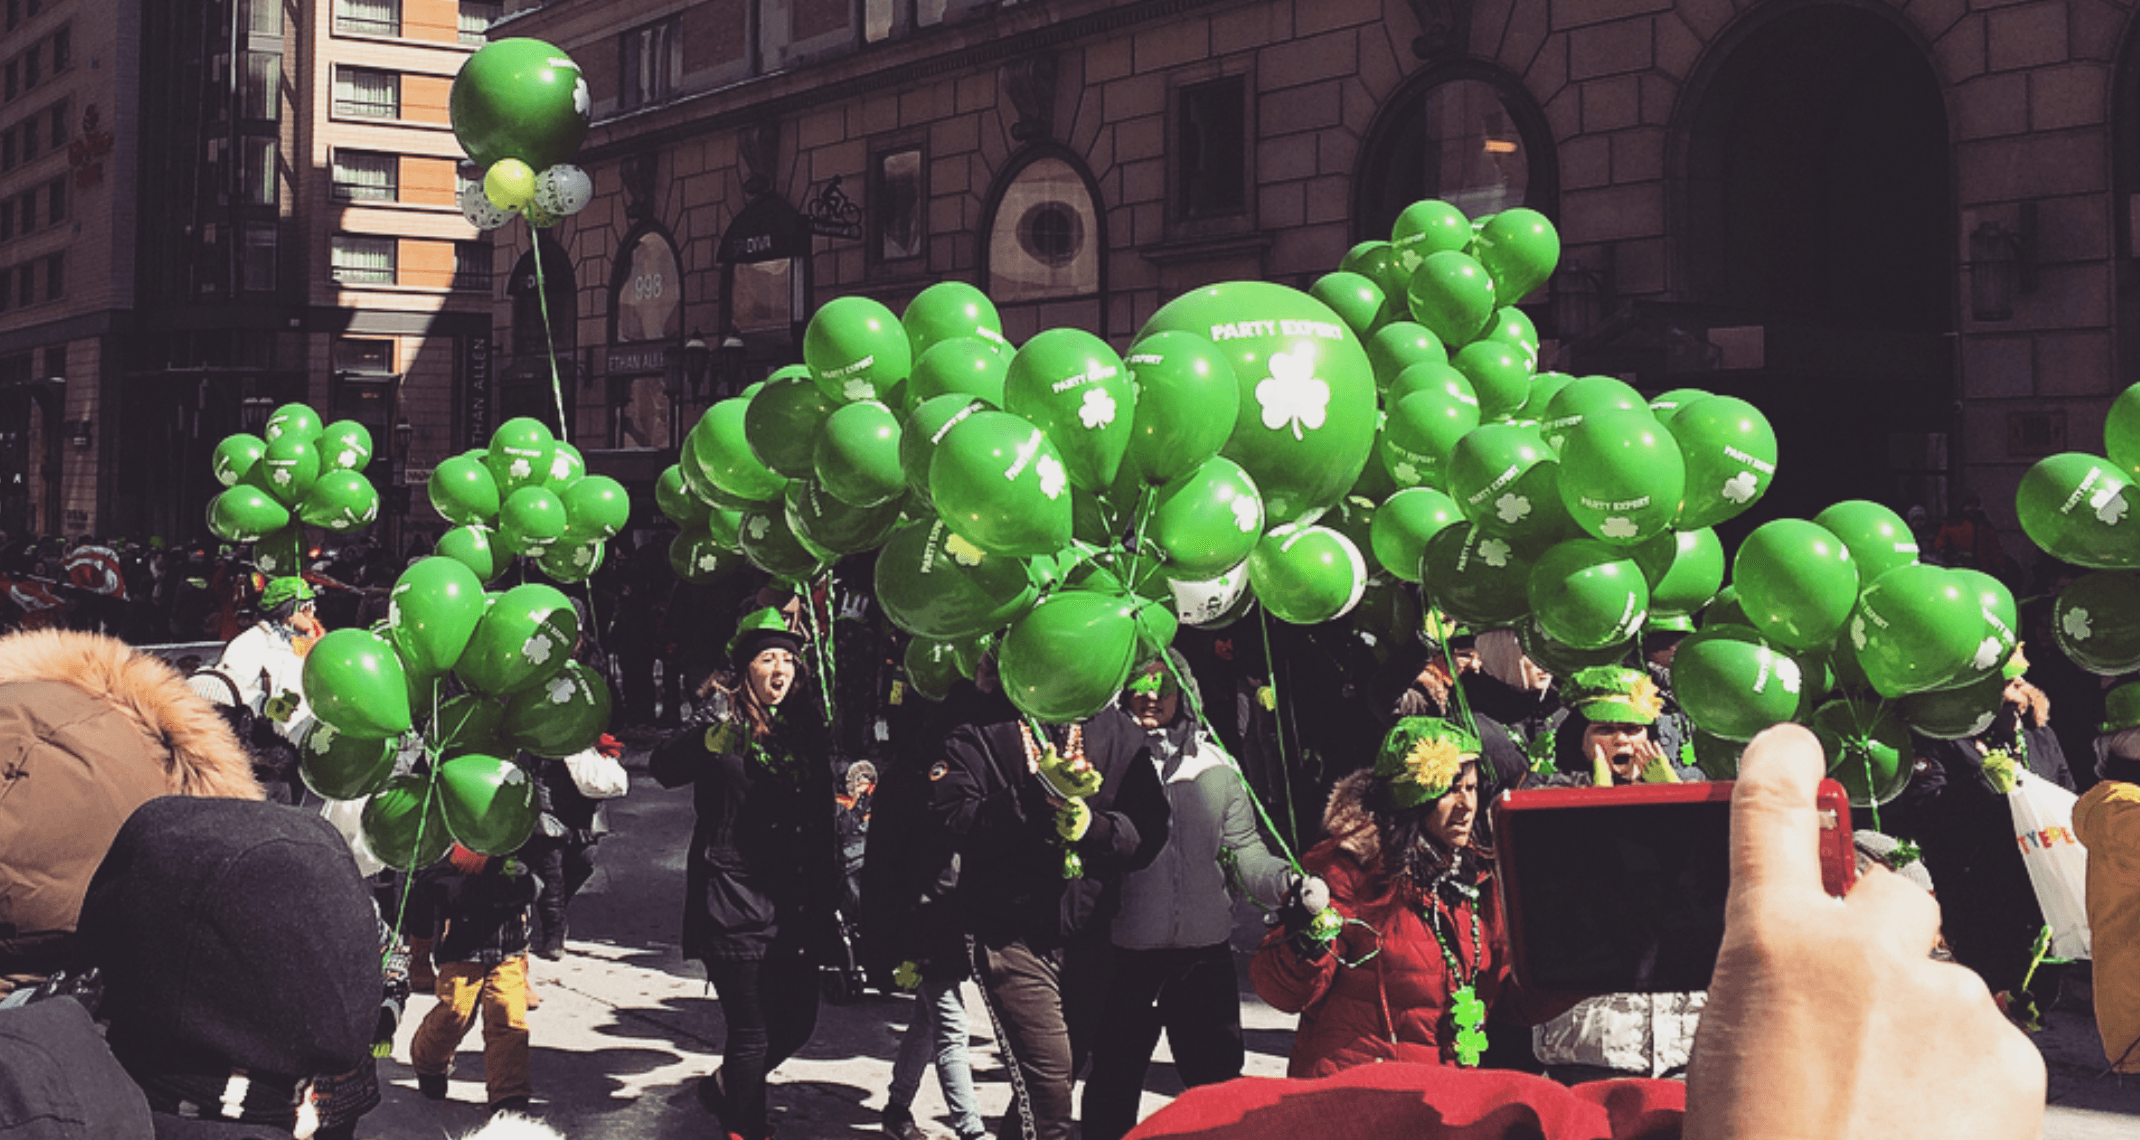 19 festive photos from the St. Patrick's Day Parade in Montreal